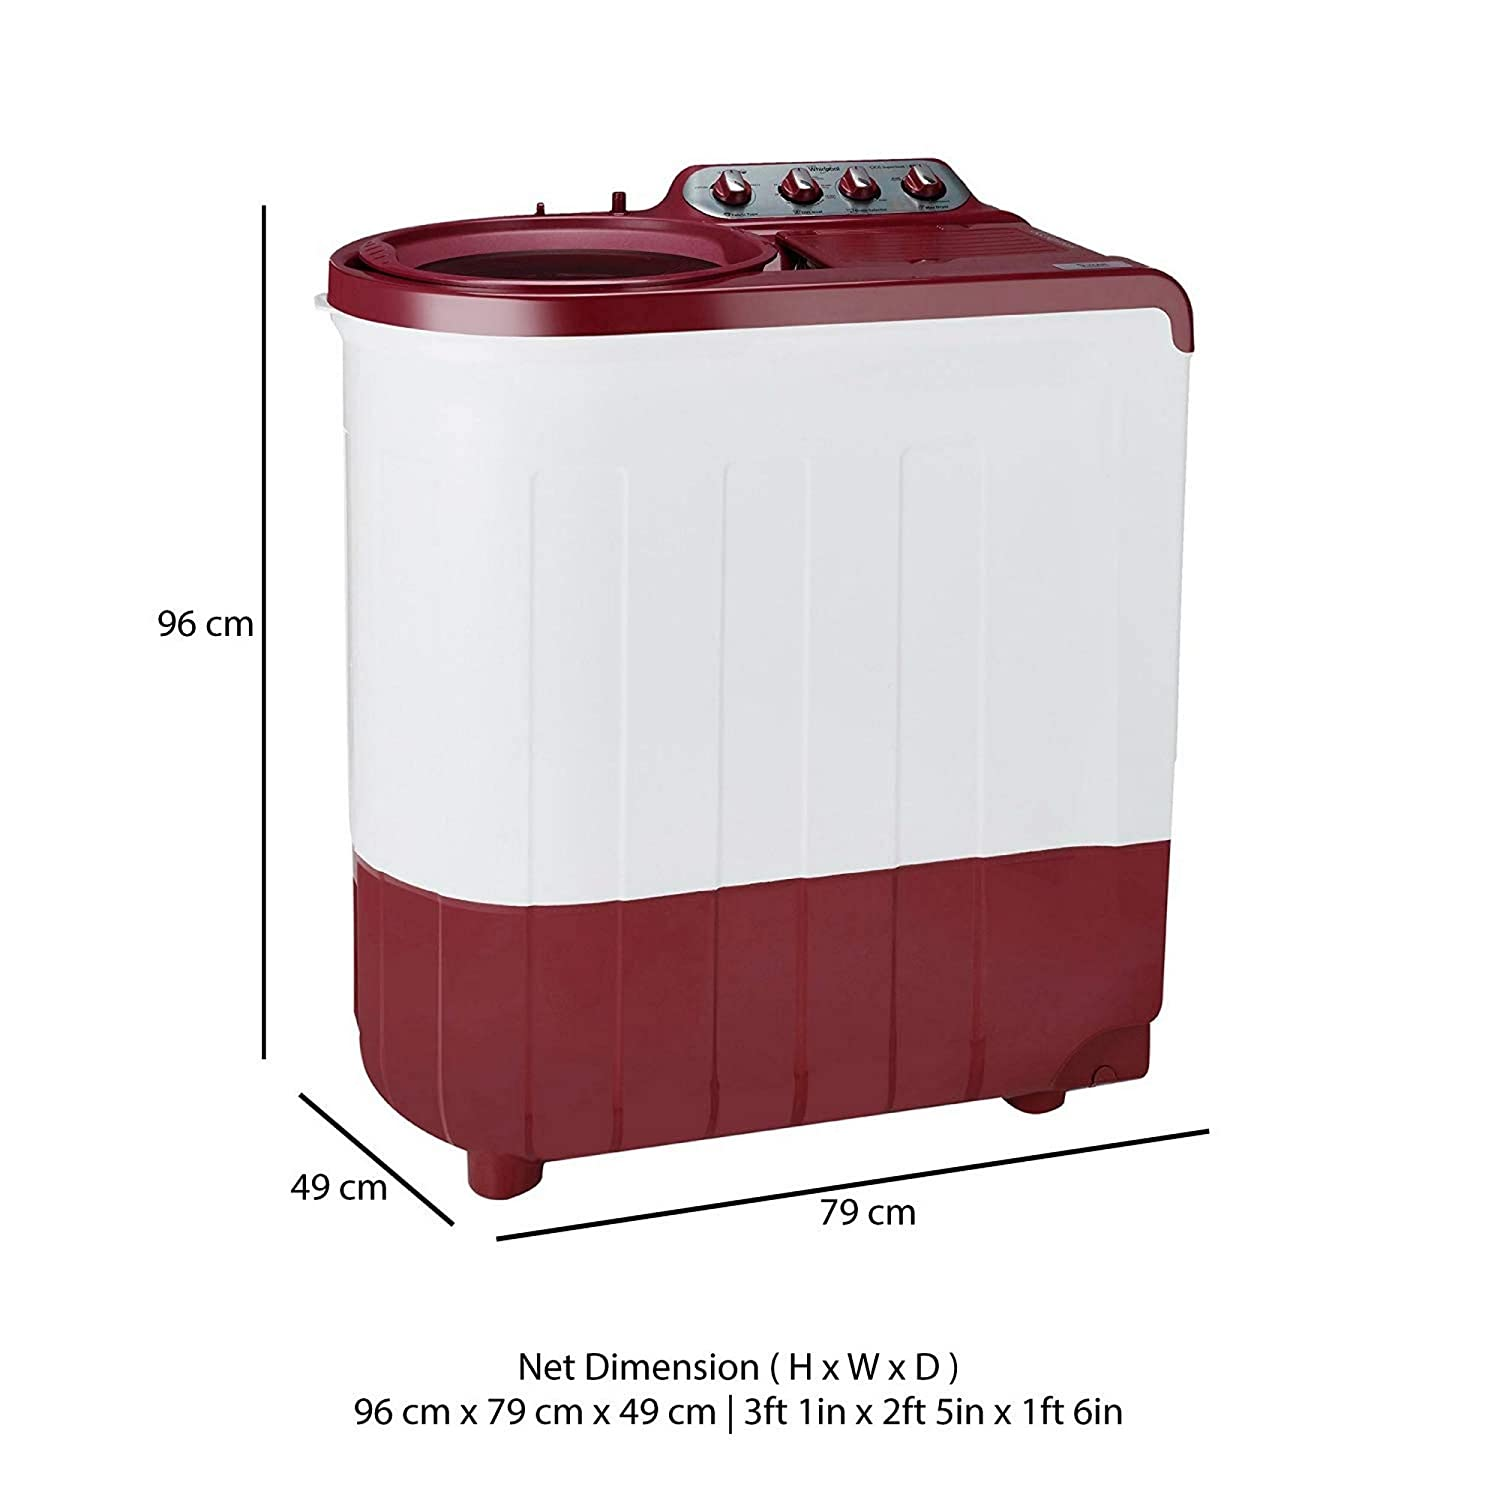 Whirlpool 7 5 kg Semi-Automatic Top Loading Washing Machine (Ace SuperSoak  7 5, Coral Red)